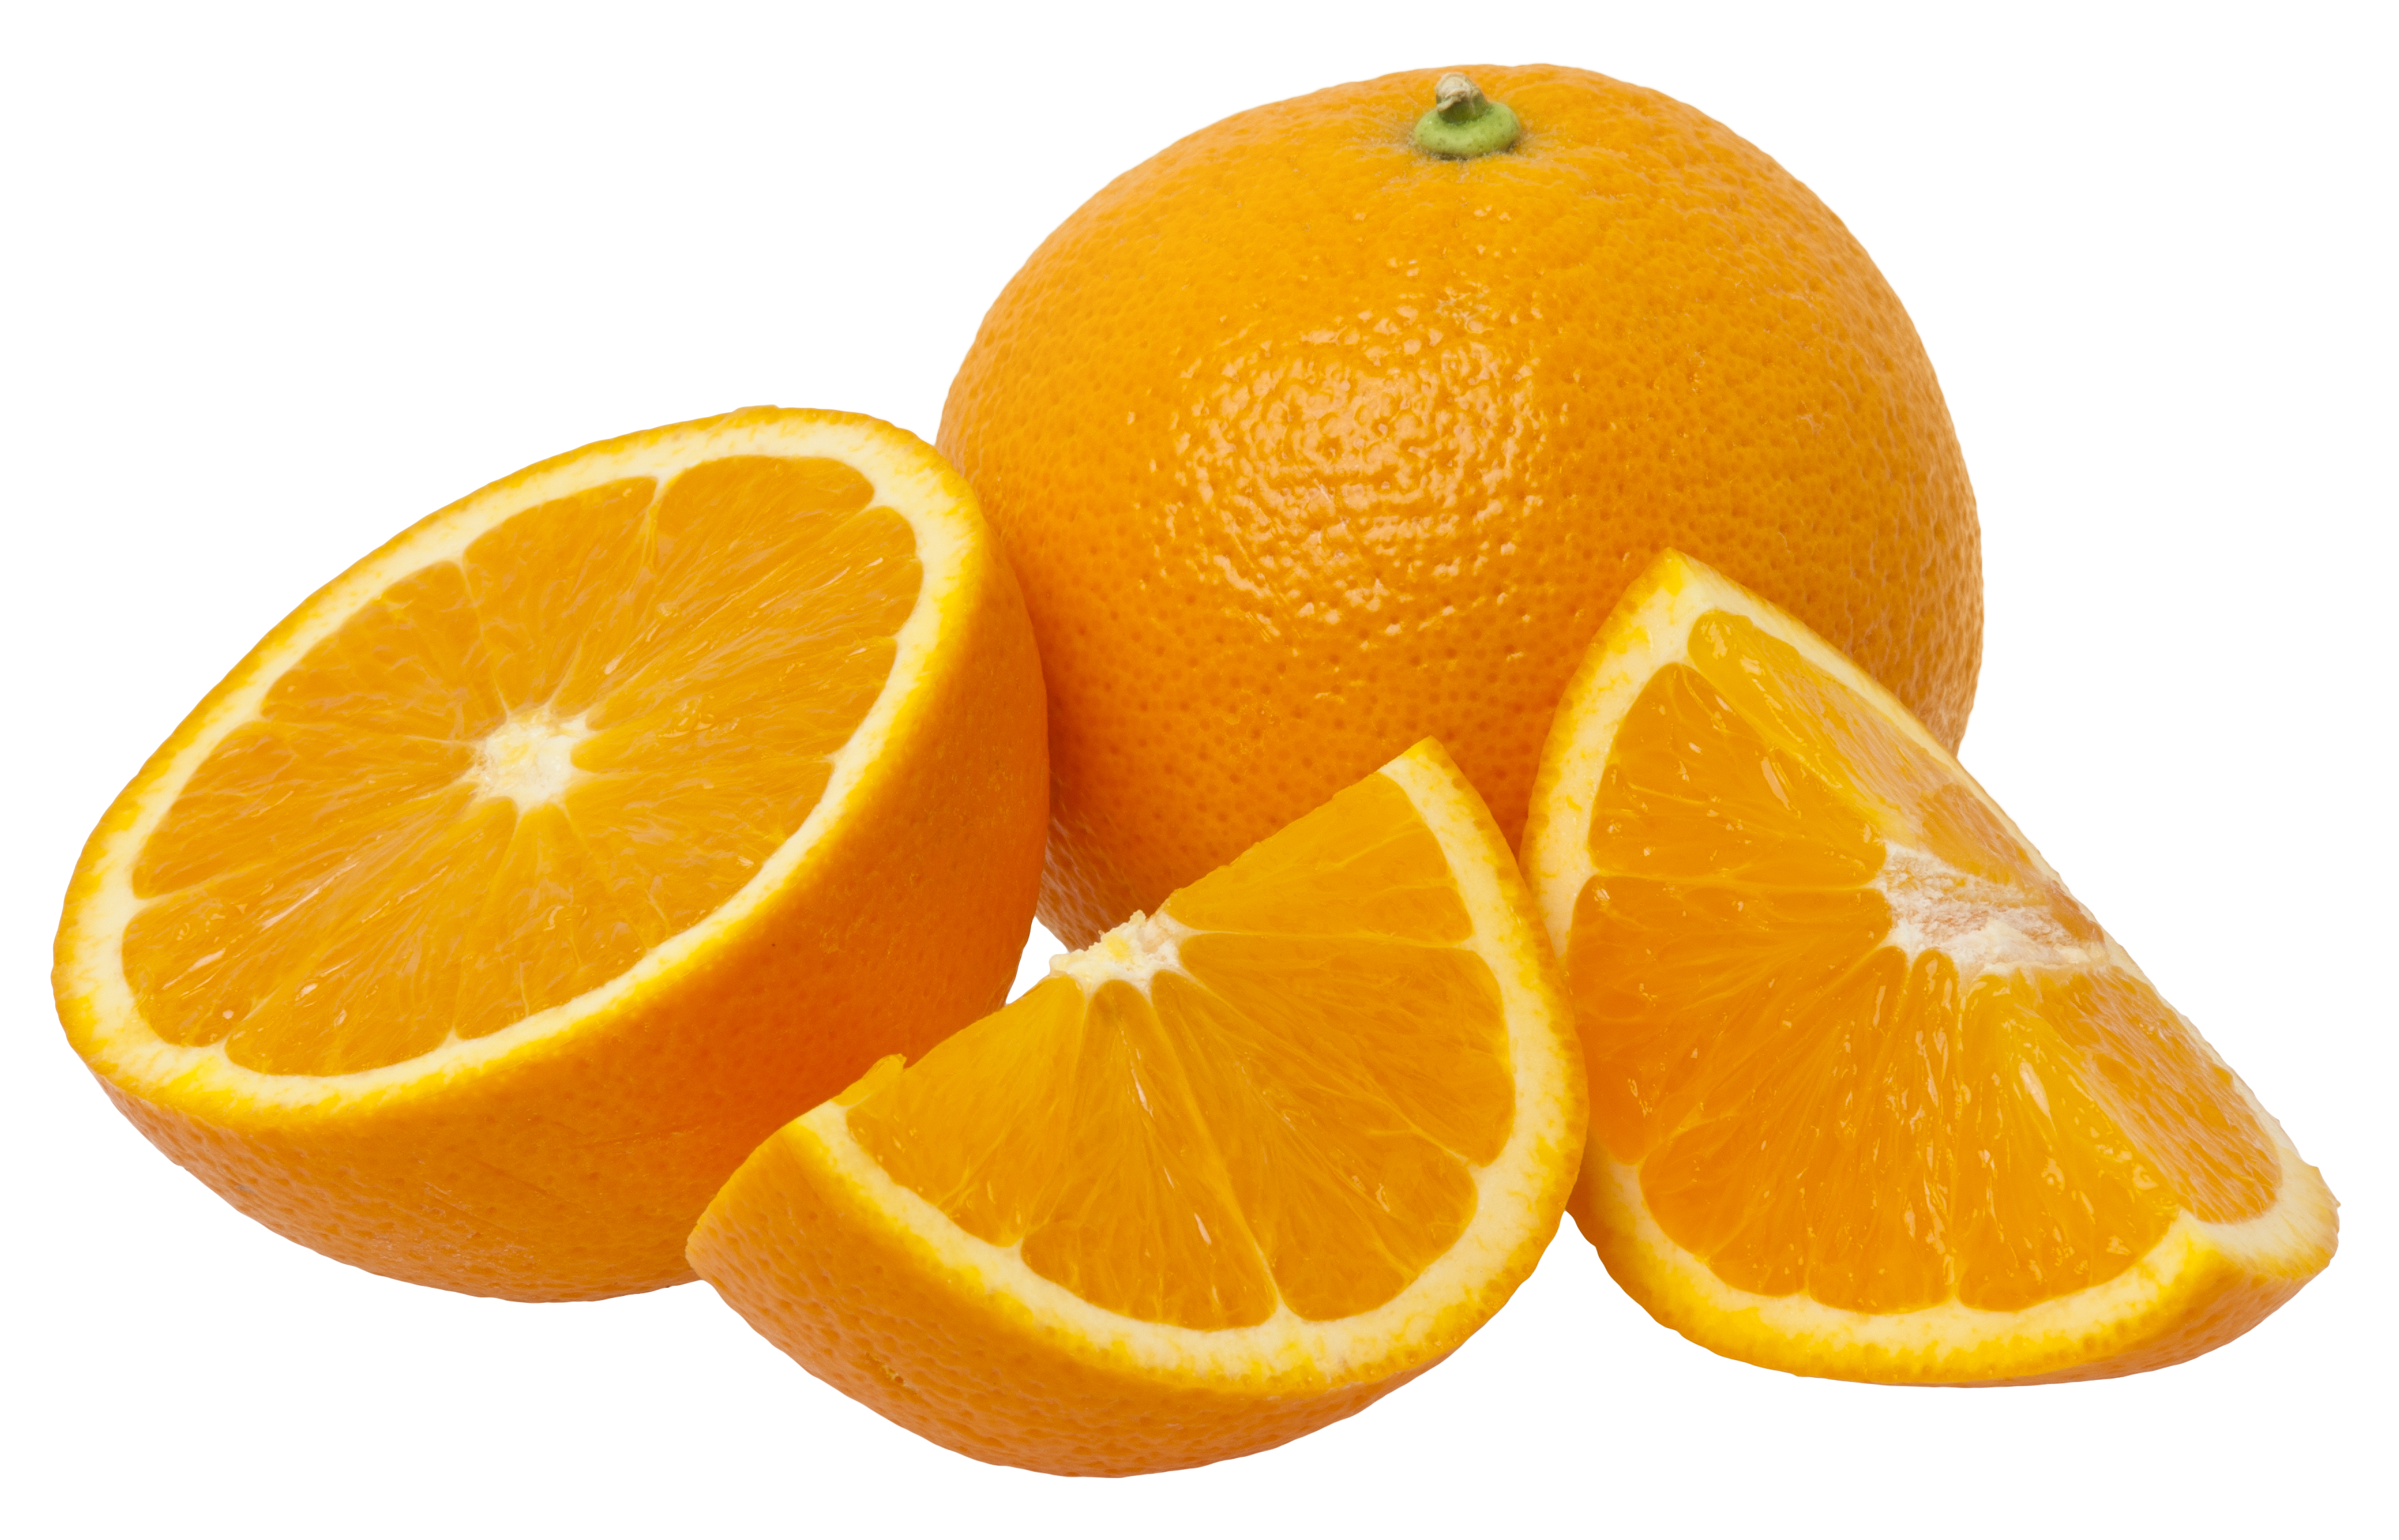 File:Orange-Fruit-Pieces.jpg - Wikimedia Commons